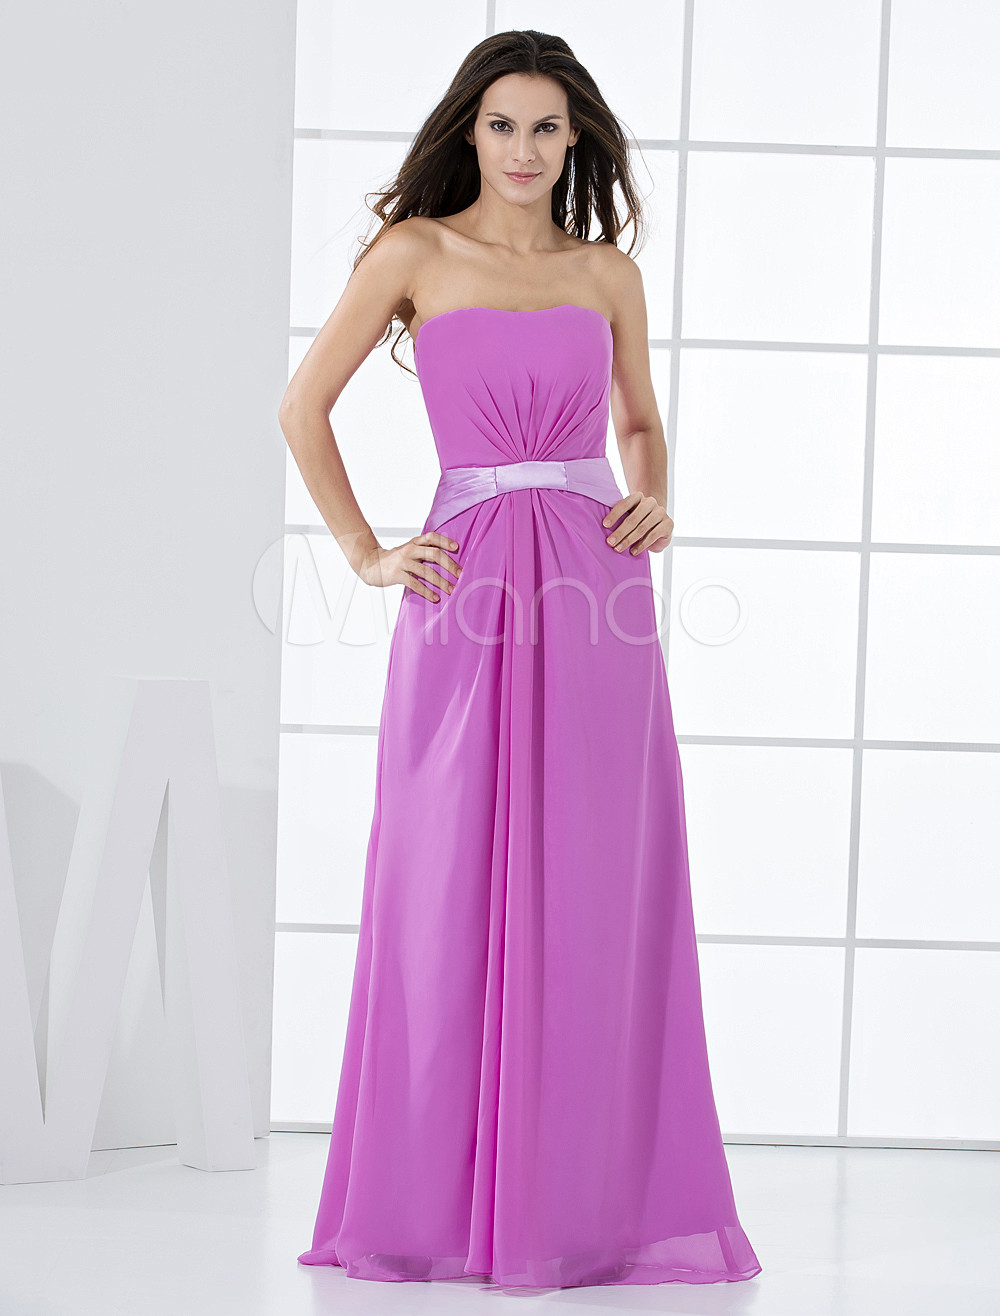 Lilac Chiffon Strapless A-line Floor Length Bridesmaid Dress